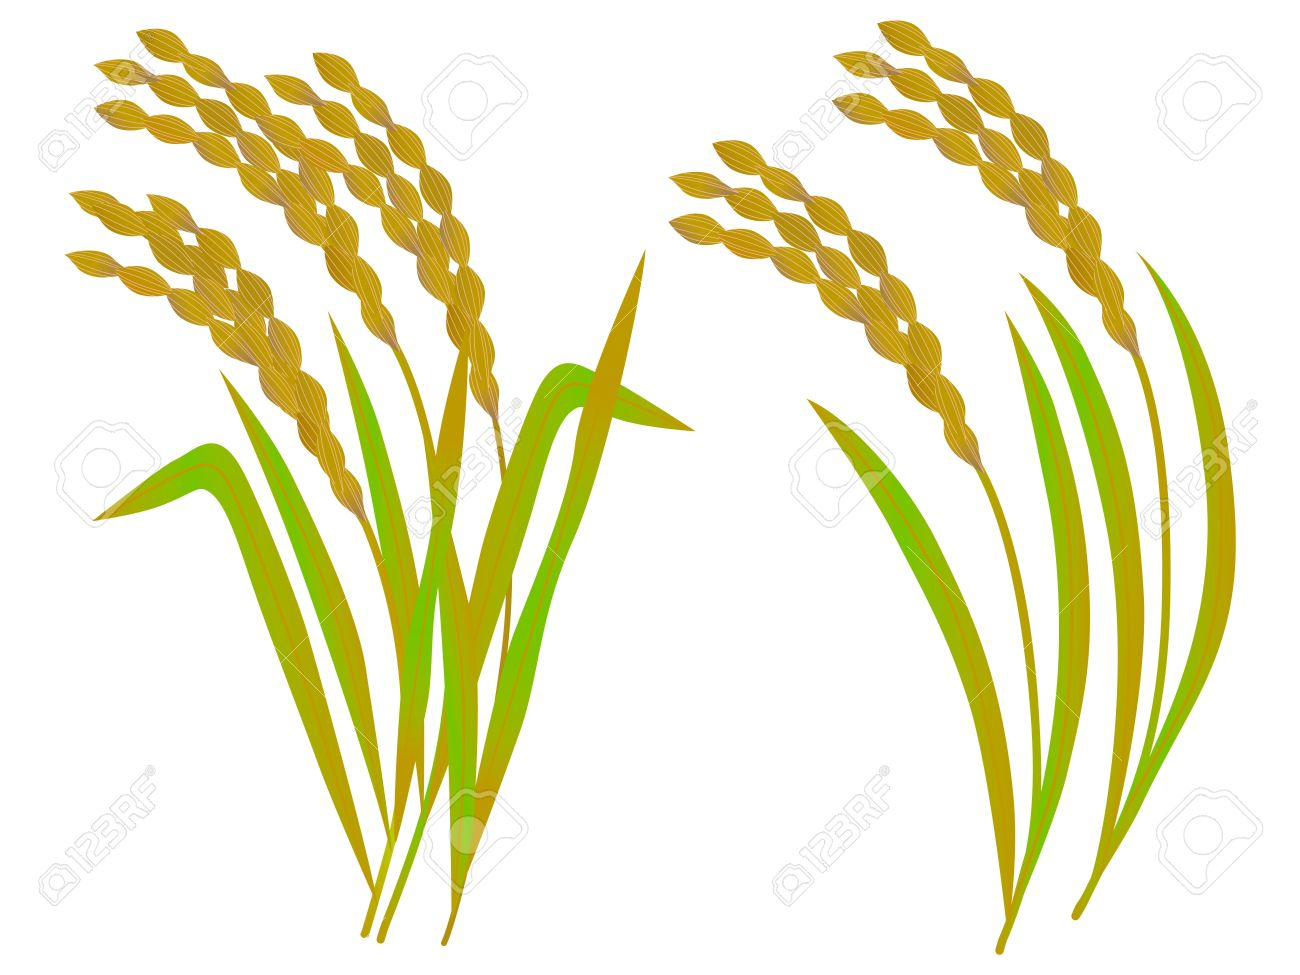 Grains rice clipart - Clipground